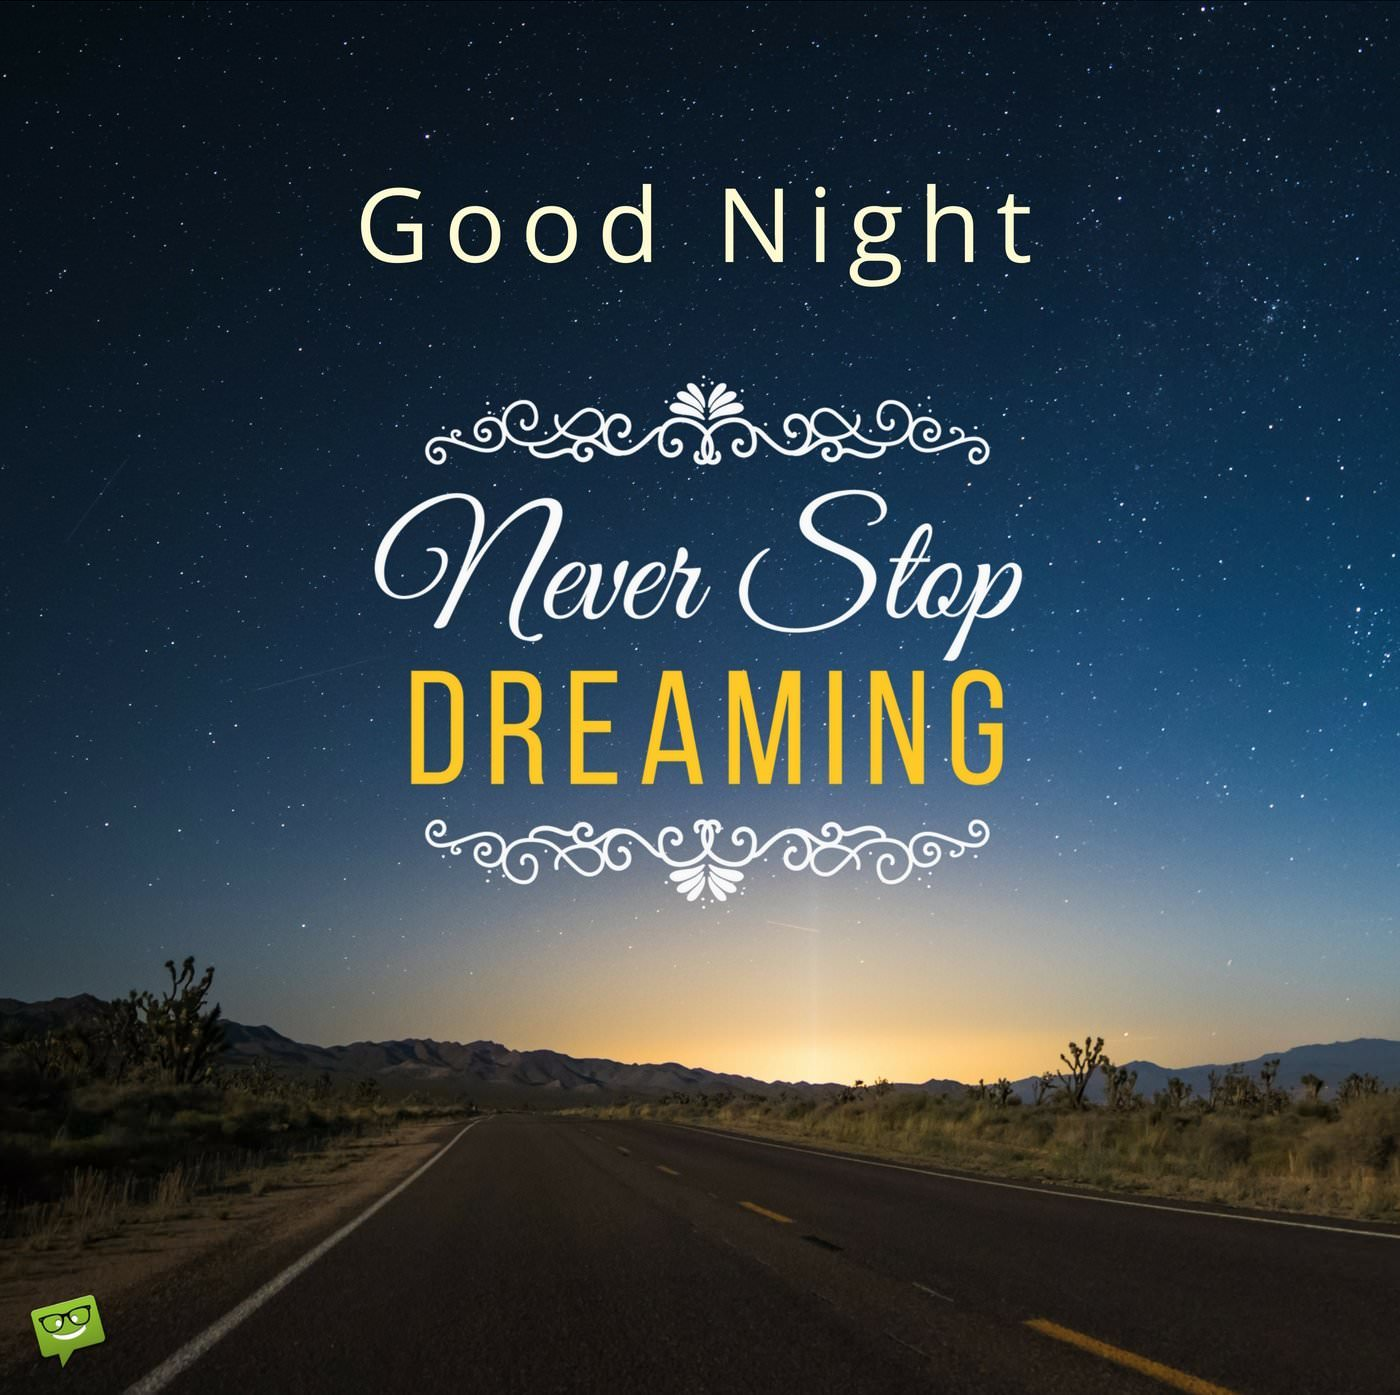 Never Stop Dreaming | Good Night Messages for Friends